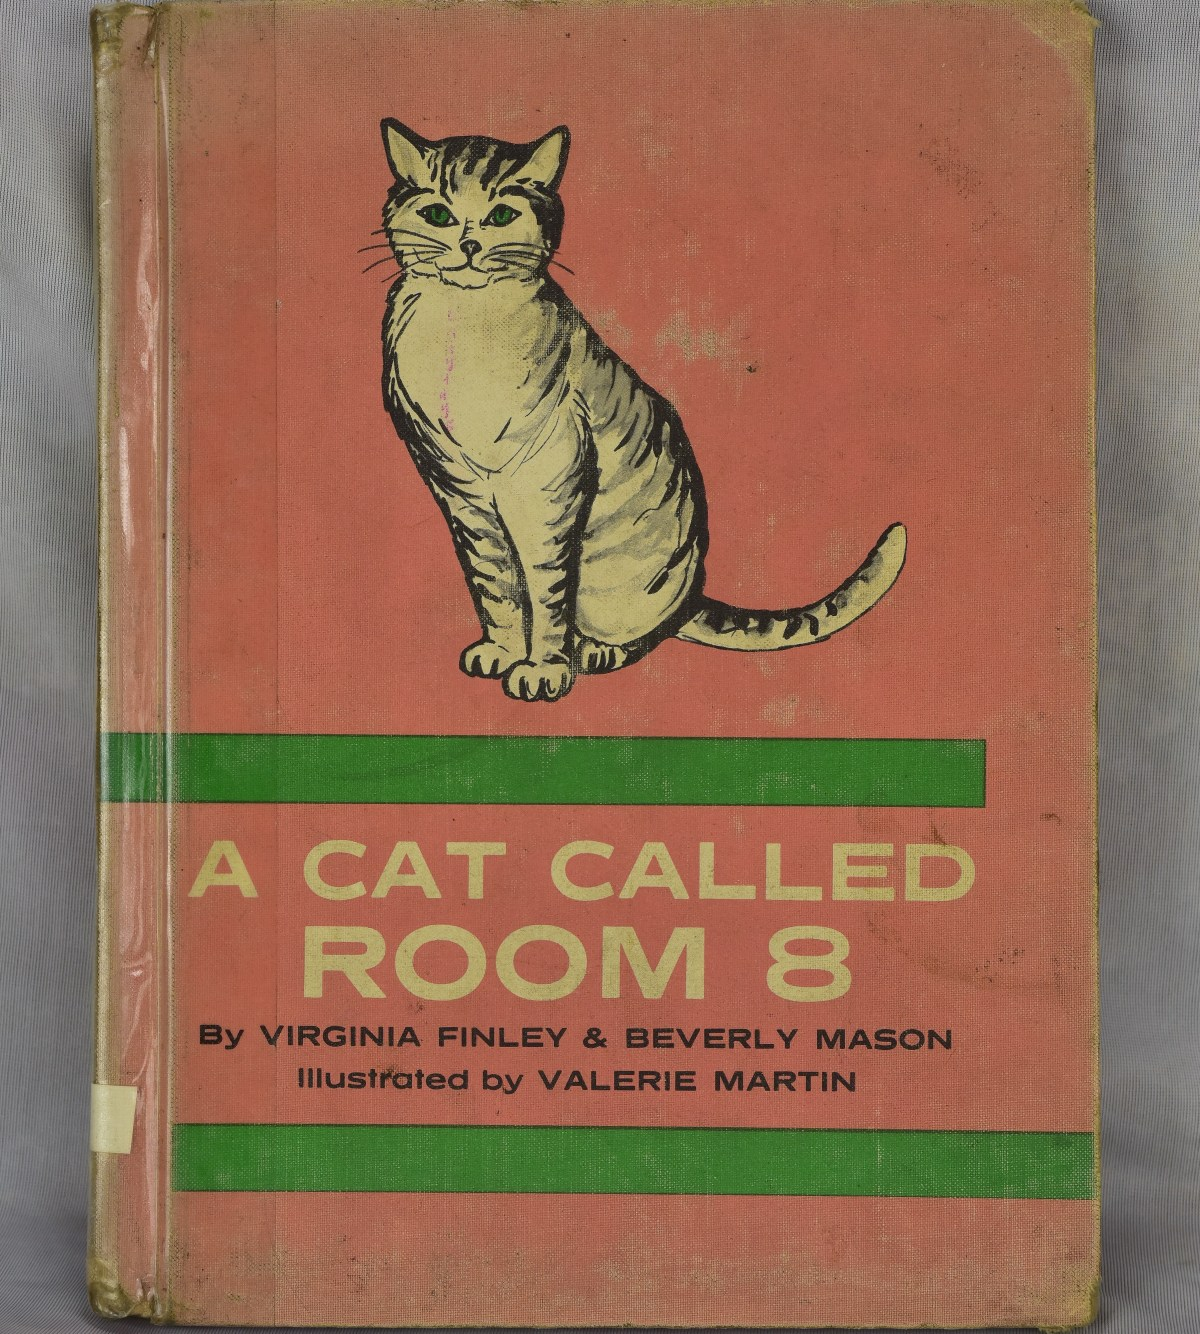 A Cat Called Room 8 by Virginia Finley and Beverly Mason, illustrated by Valerie Martin, G.P. Putnam's Sons, 1966; Credit: Paul Koudounaris